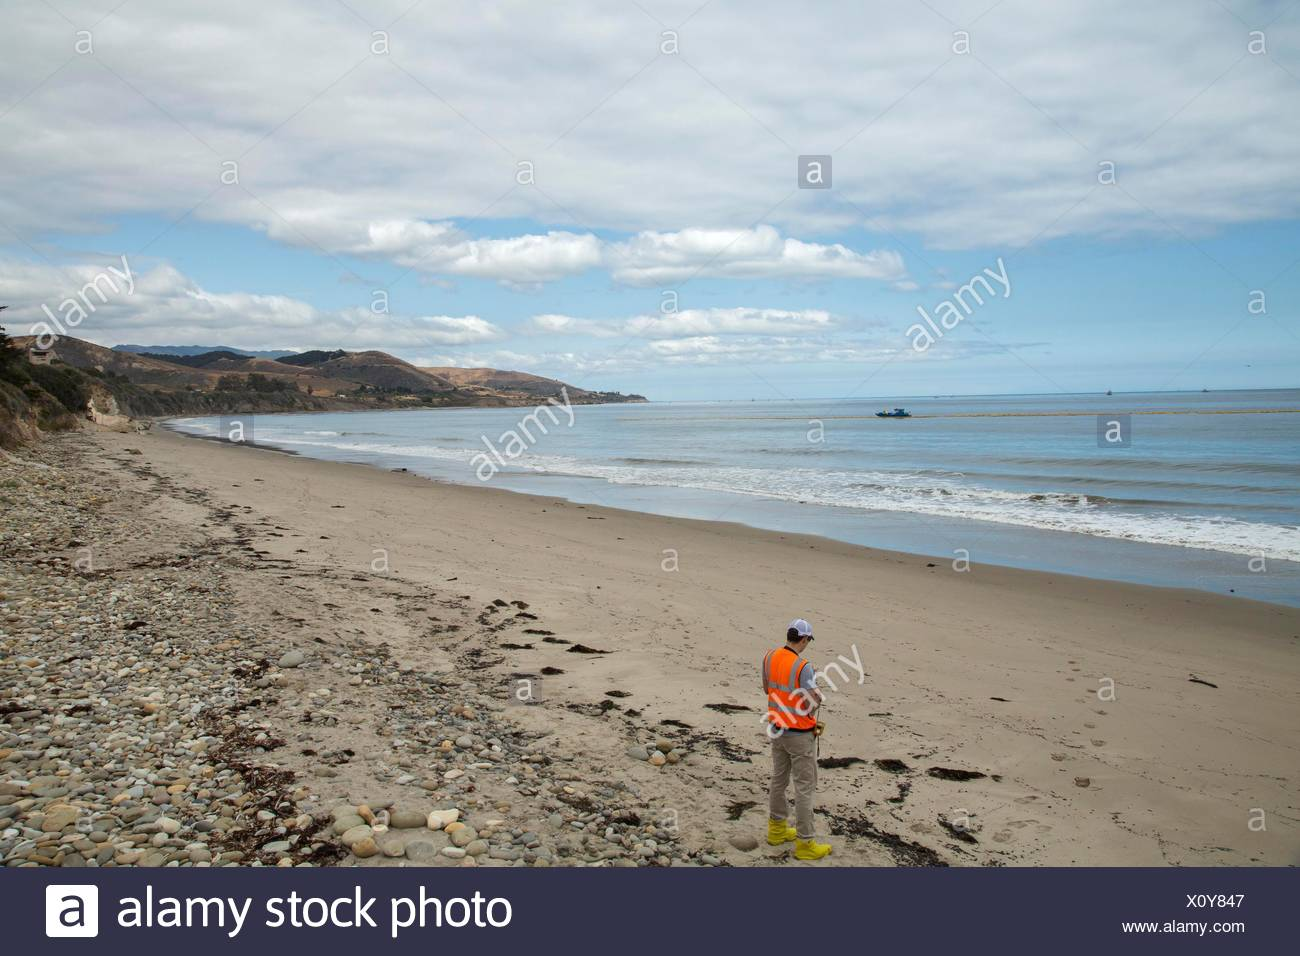 A technician hired by the oil company monitoring air quality,benzene and other hazardous contaminant levels,containment and clean up of the oil spill near Refugio State Beach. - Stock Image